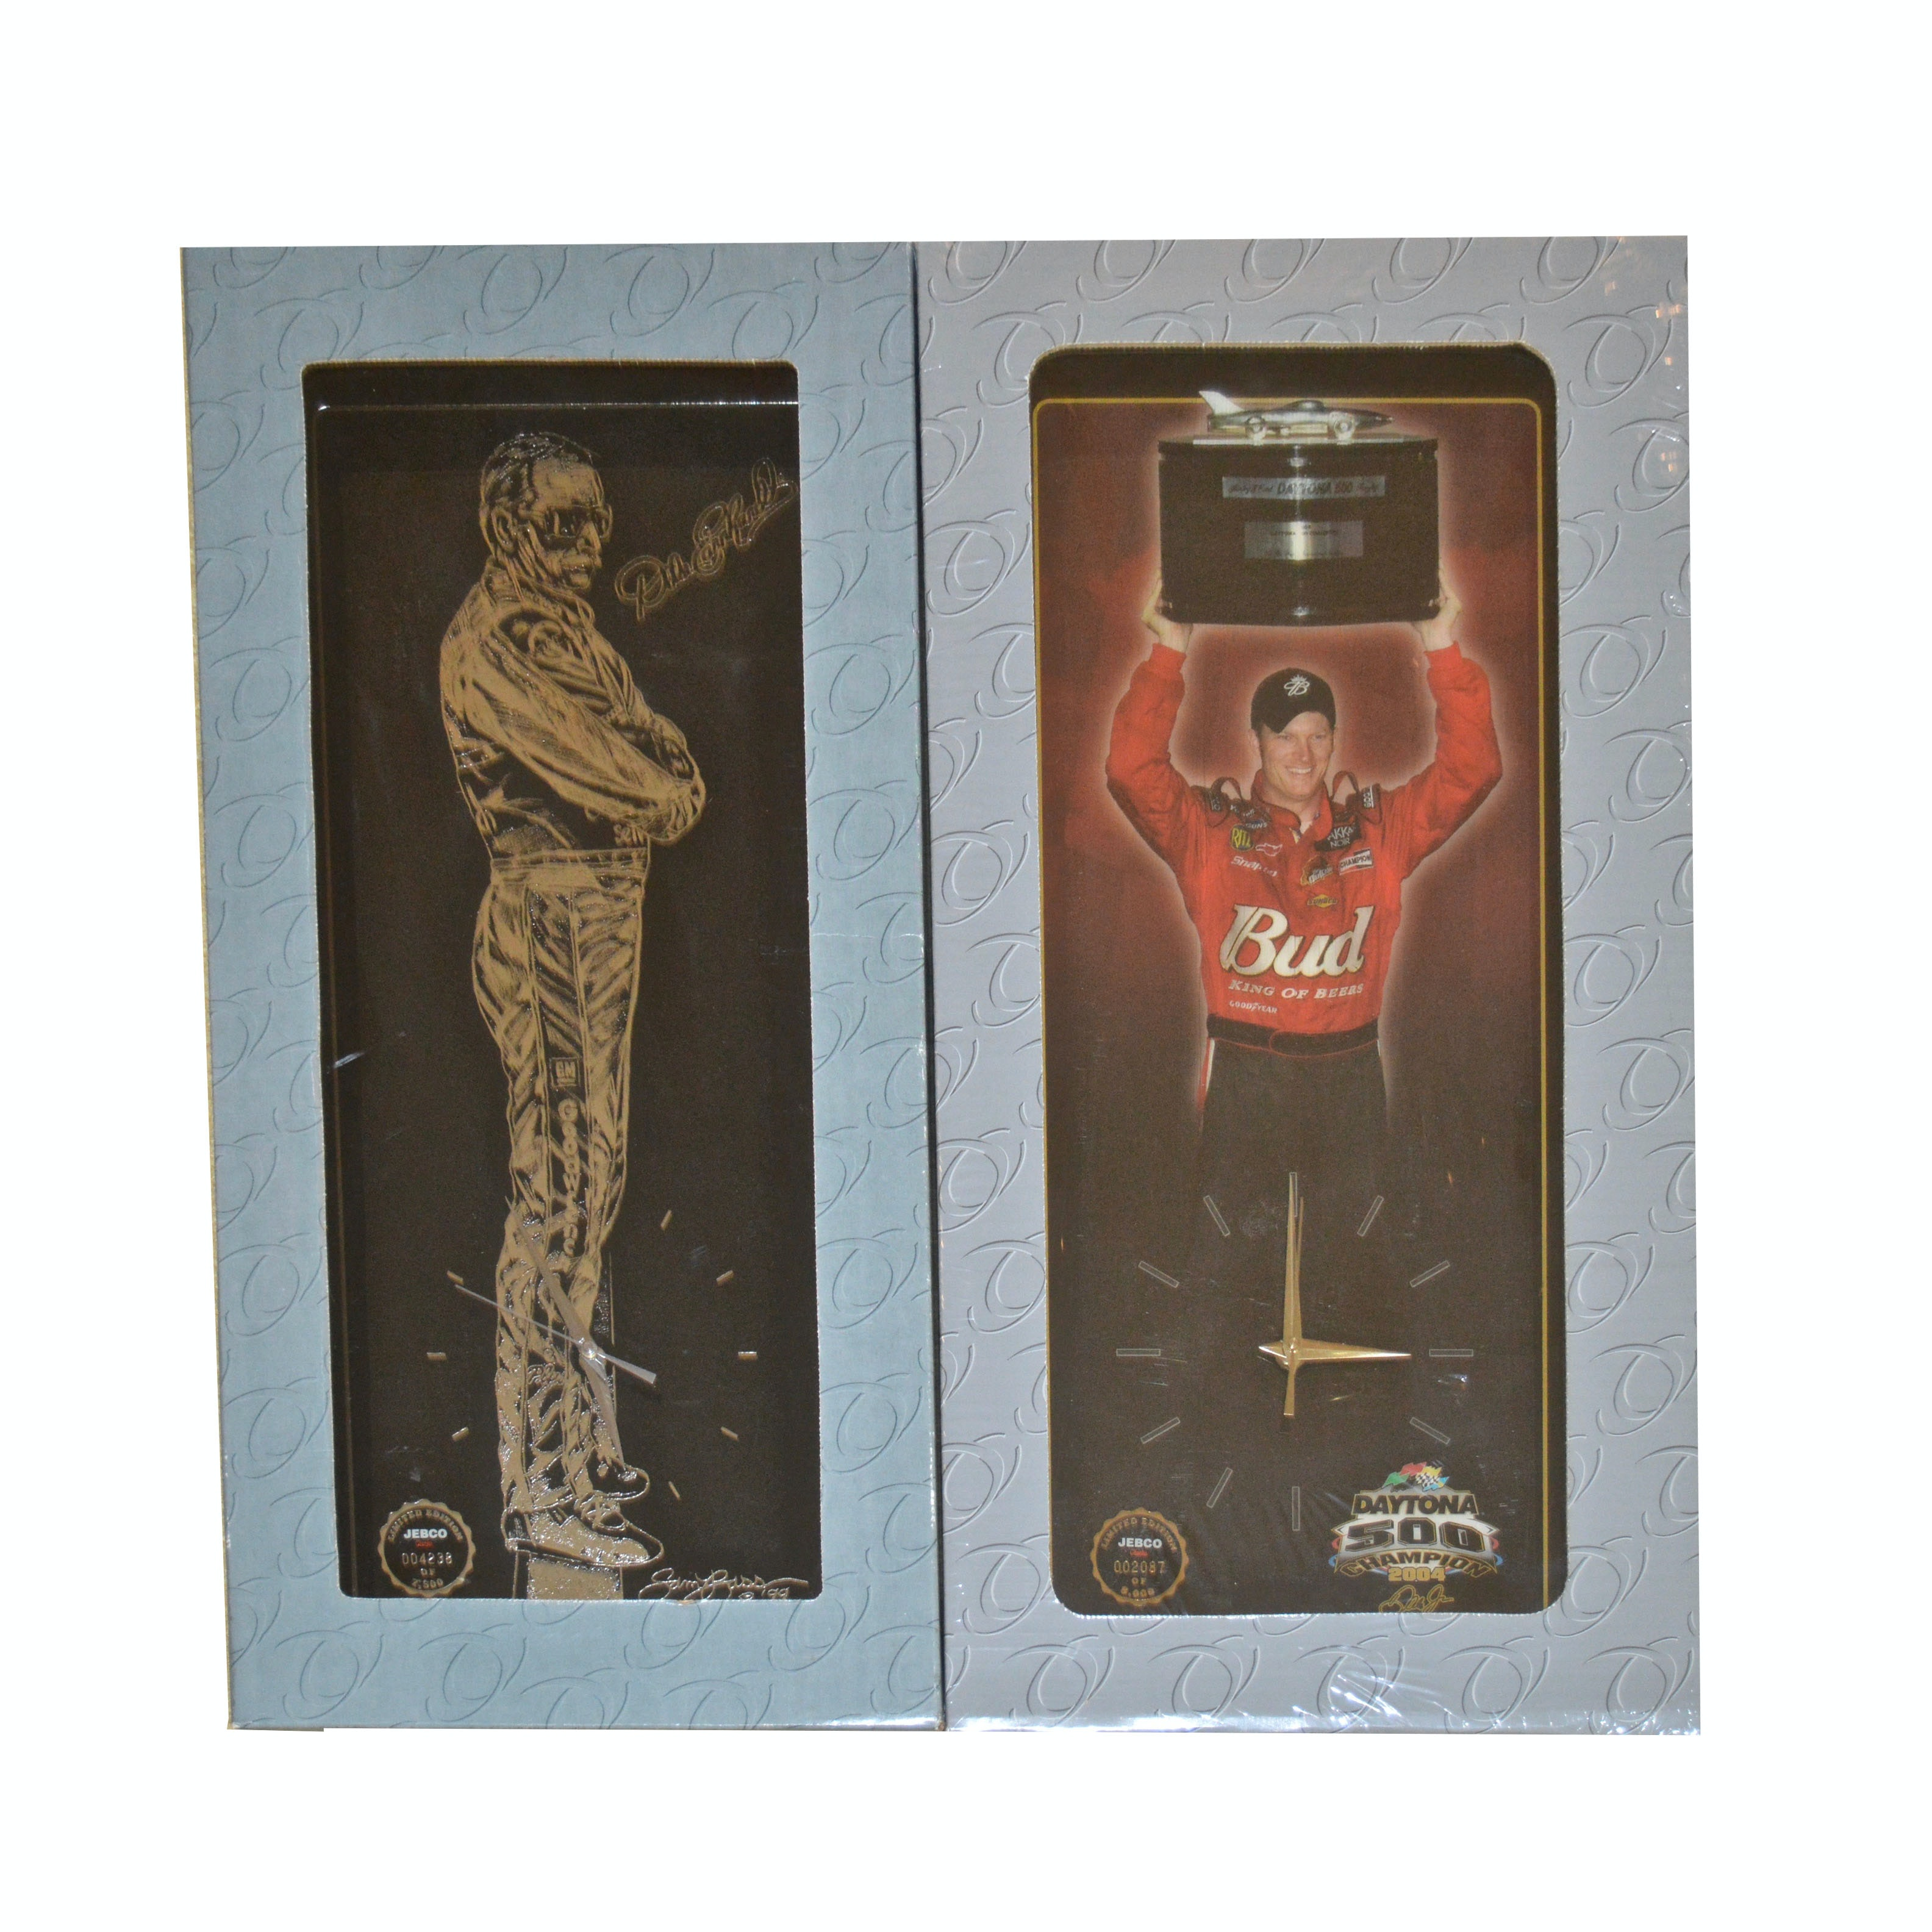 Pair of Limited Edition Jebco Wall Clocks Featuring Dale Earnhardt